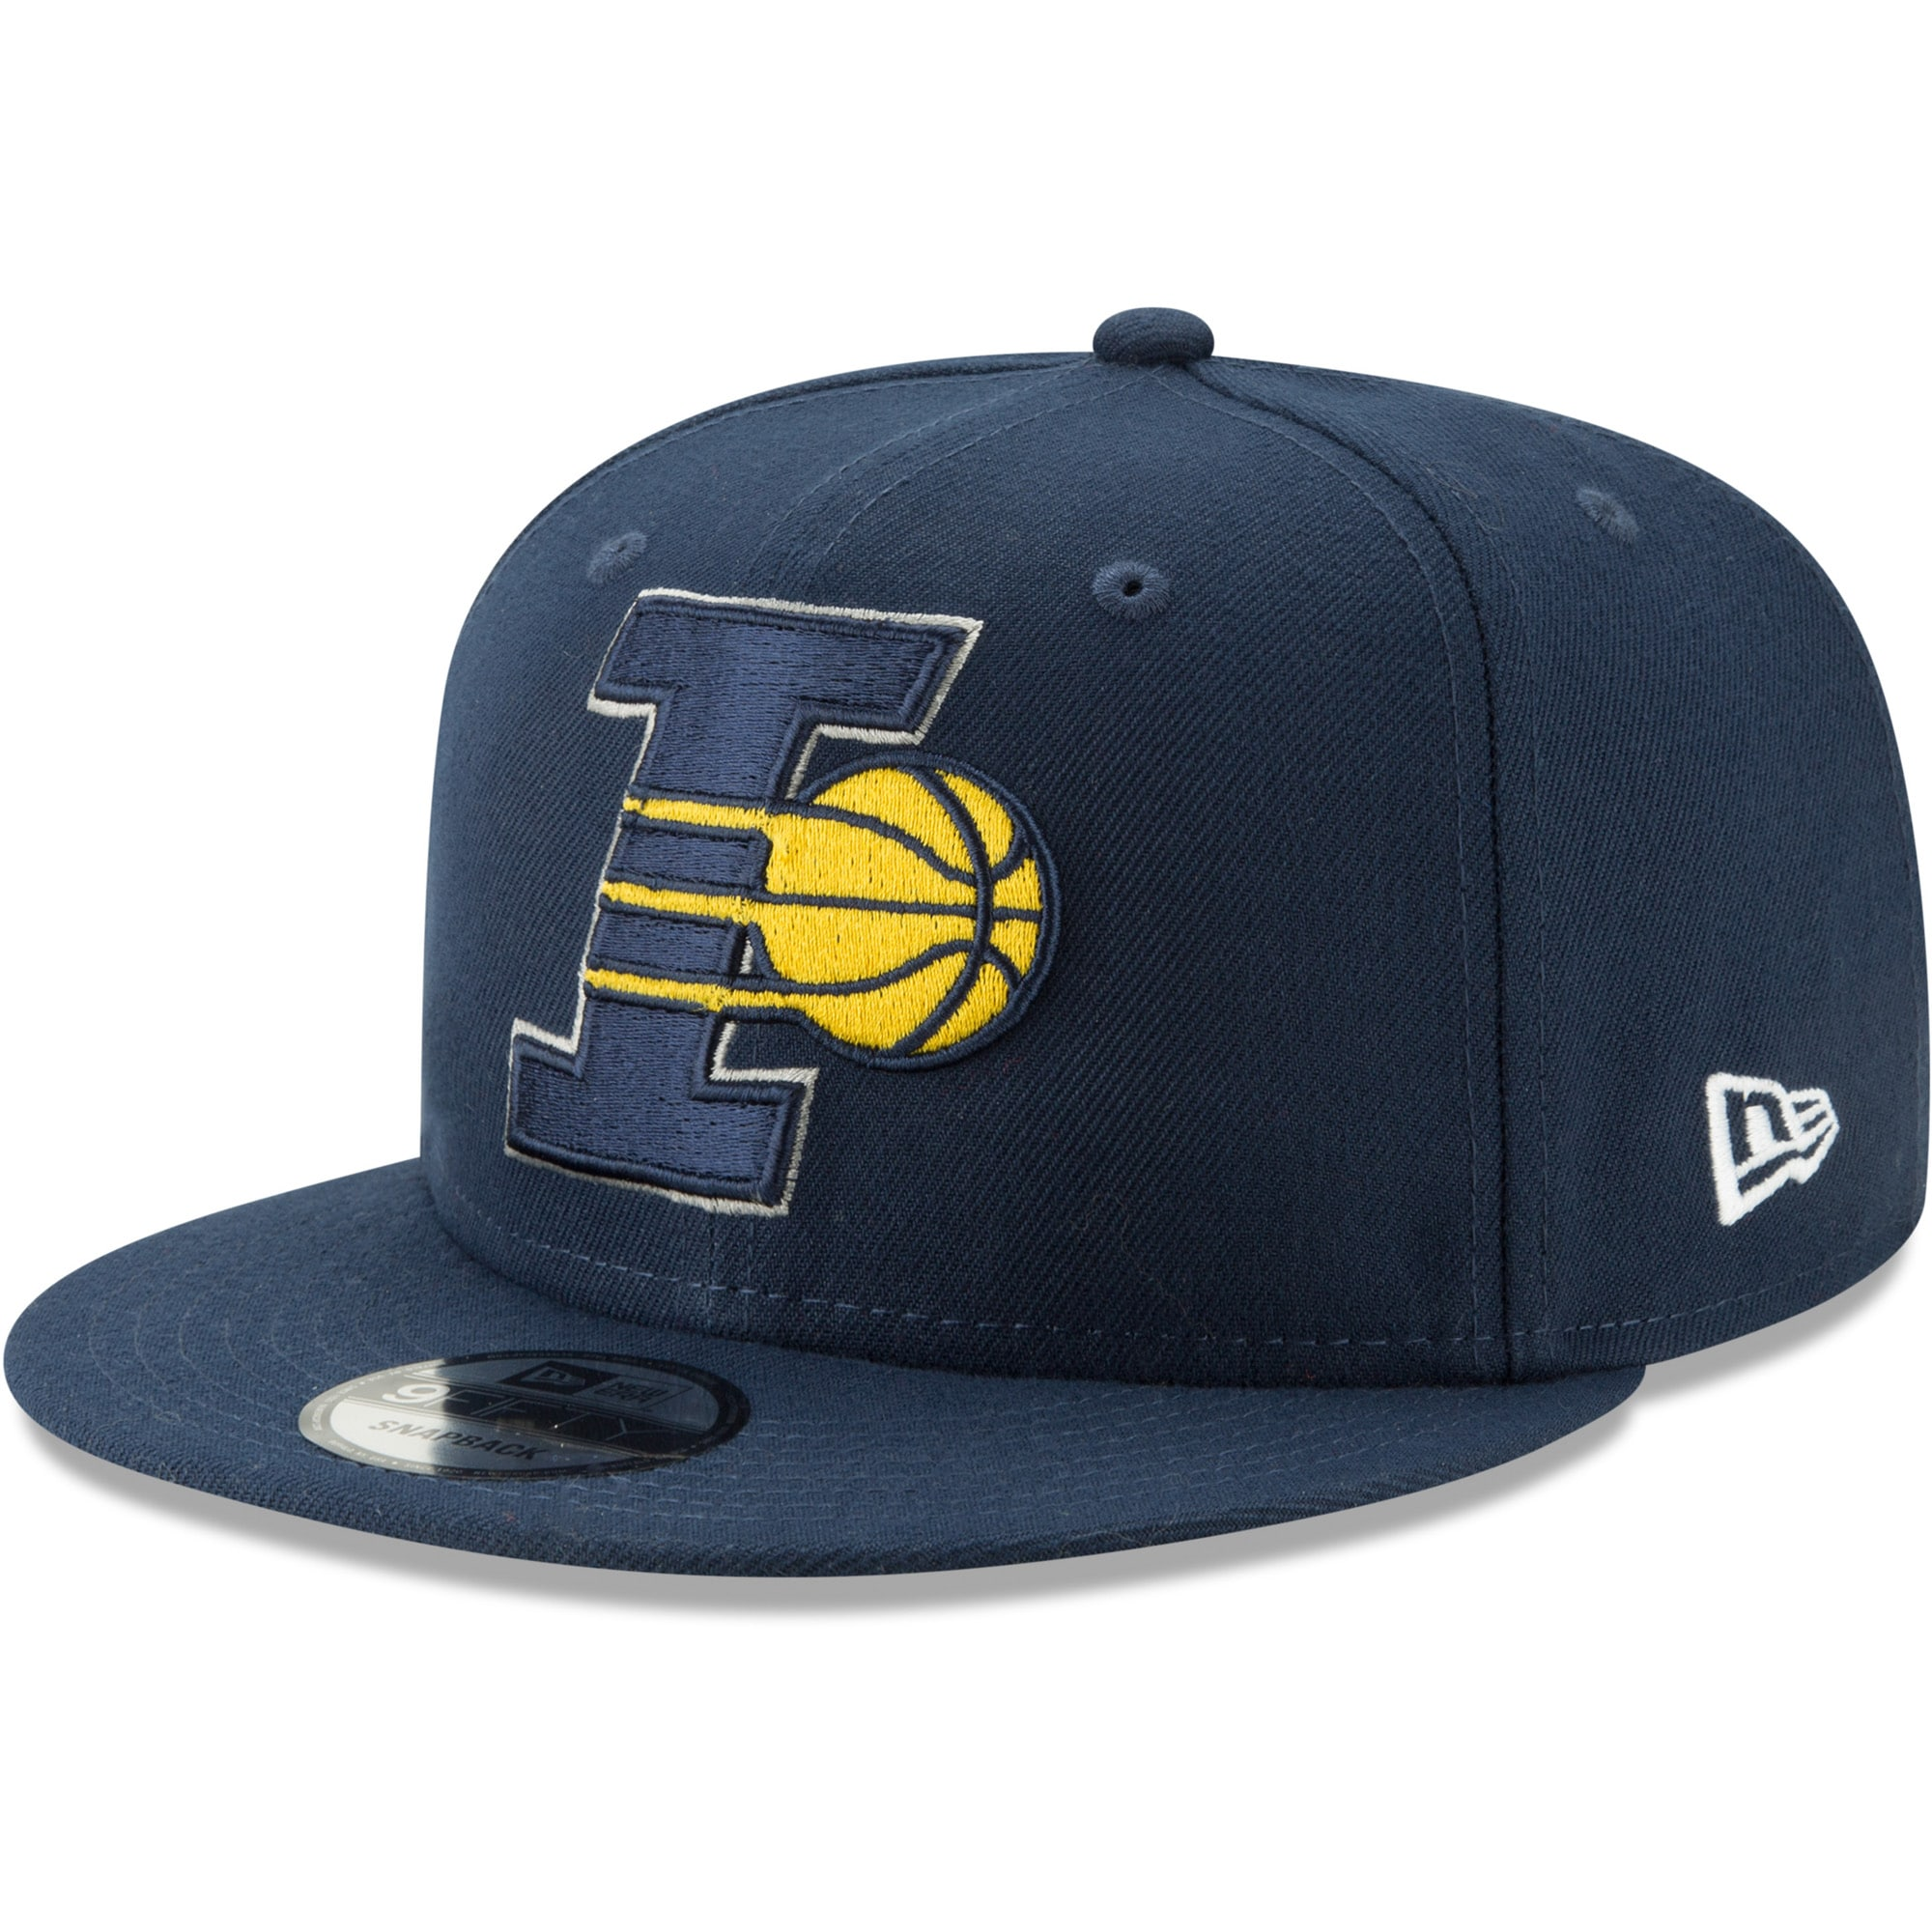 Indiana Pacers New Era Back Half 9FIFTY Adjustable Hat - Navy